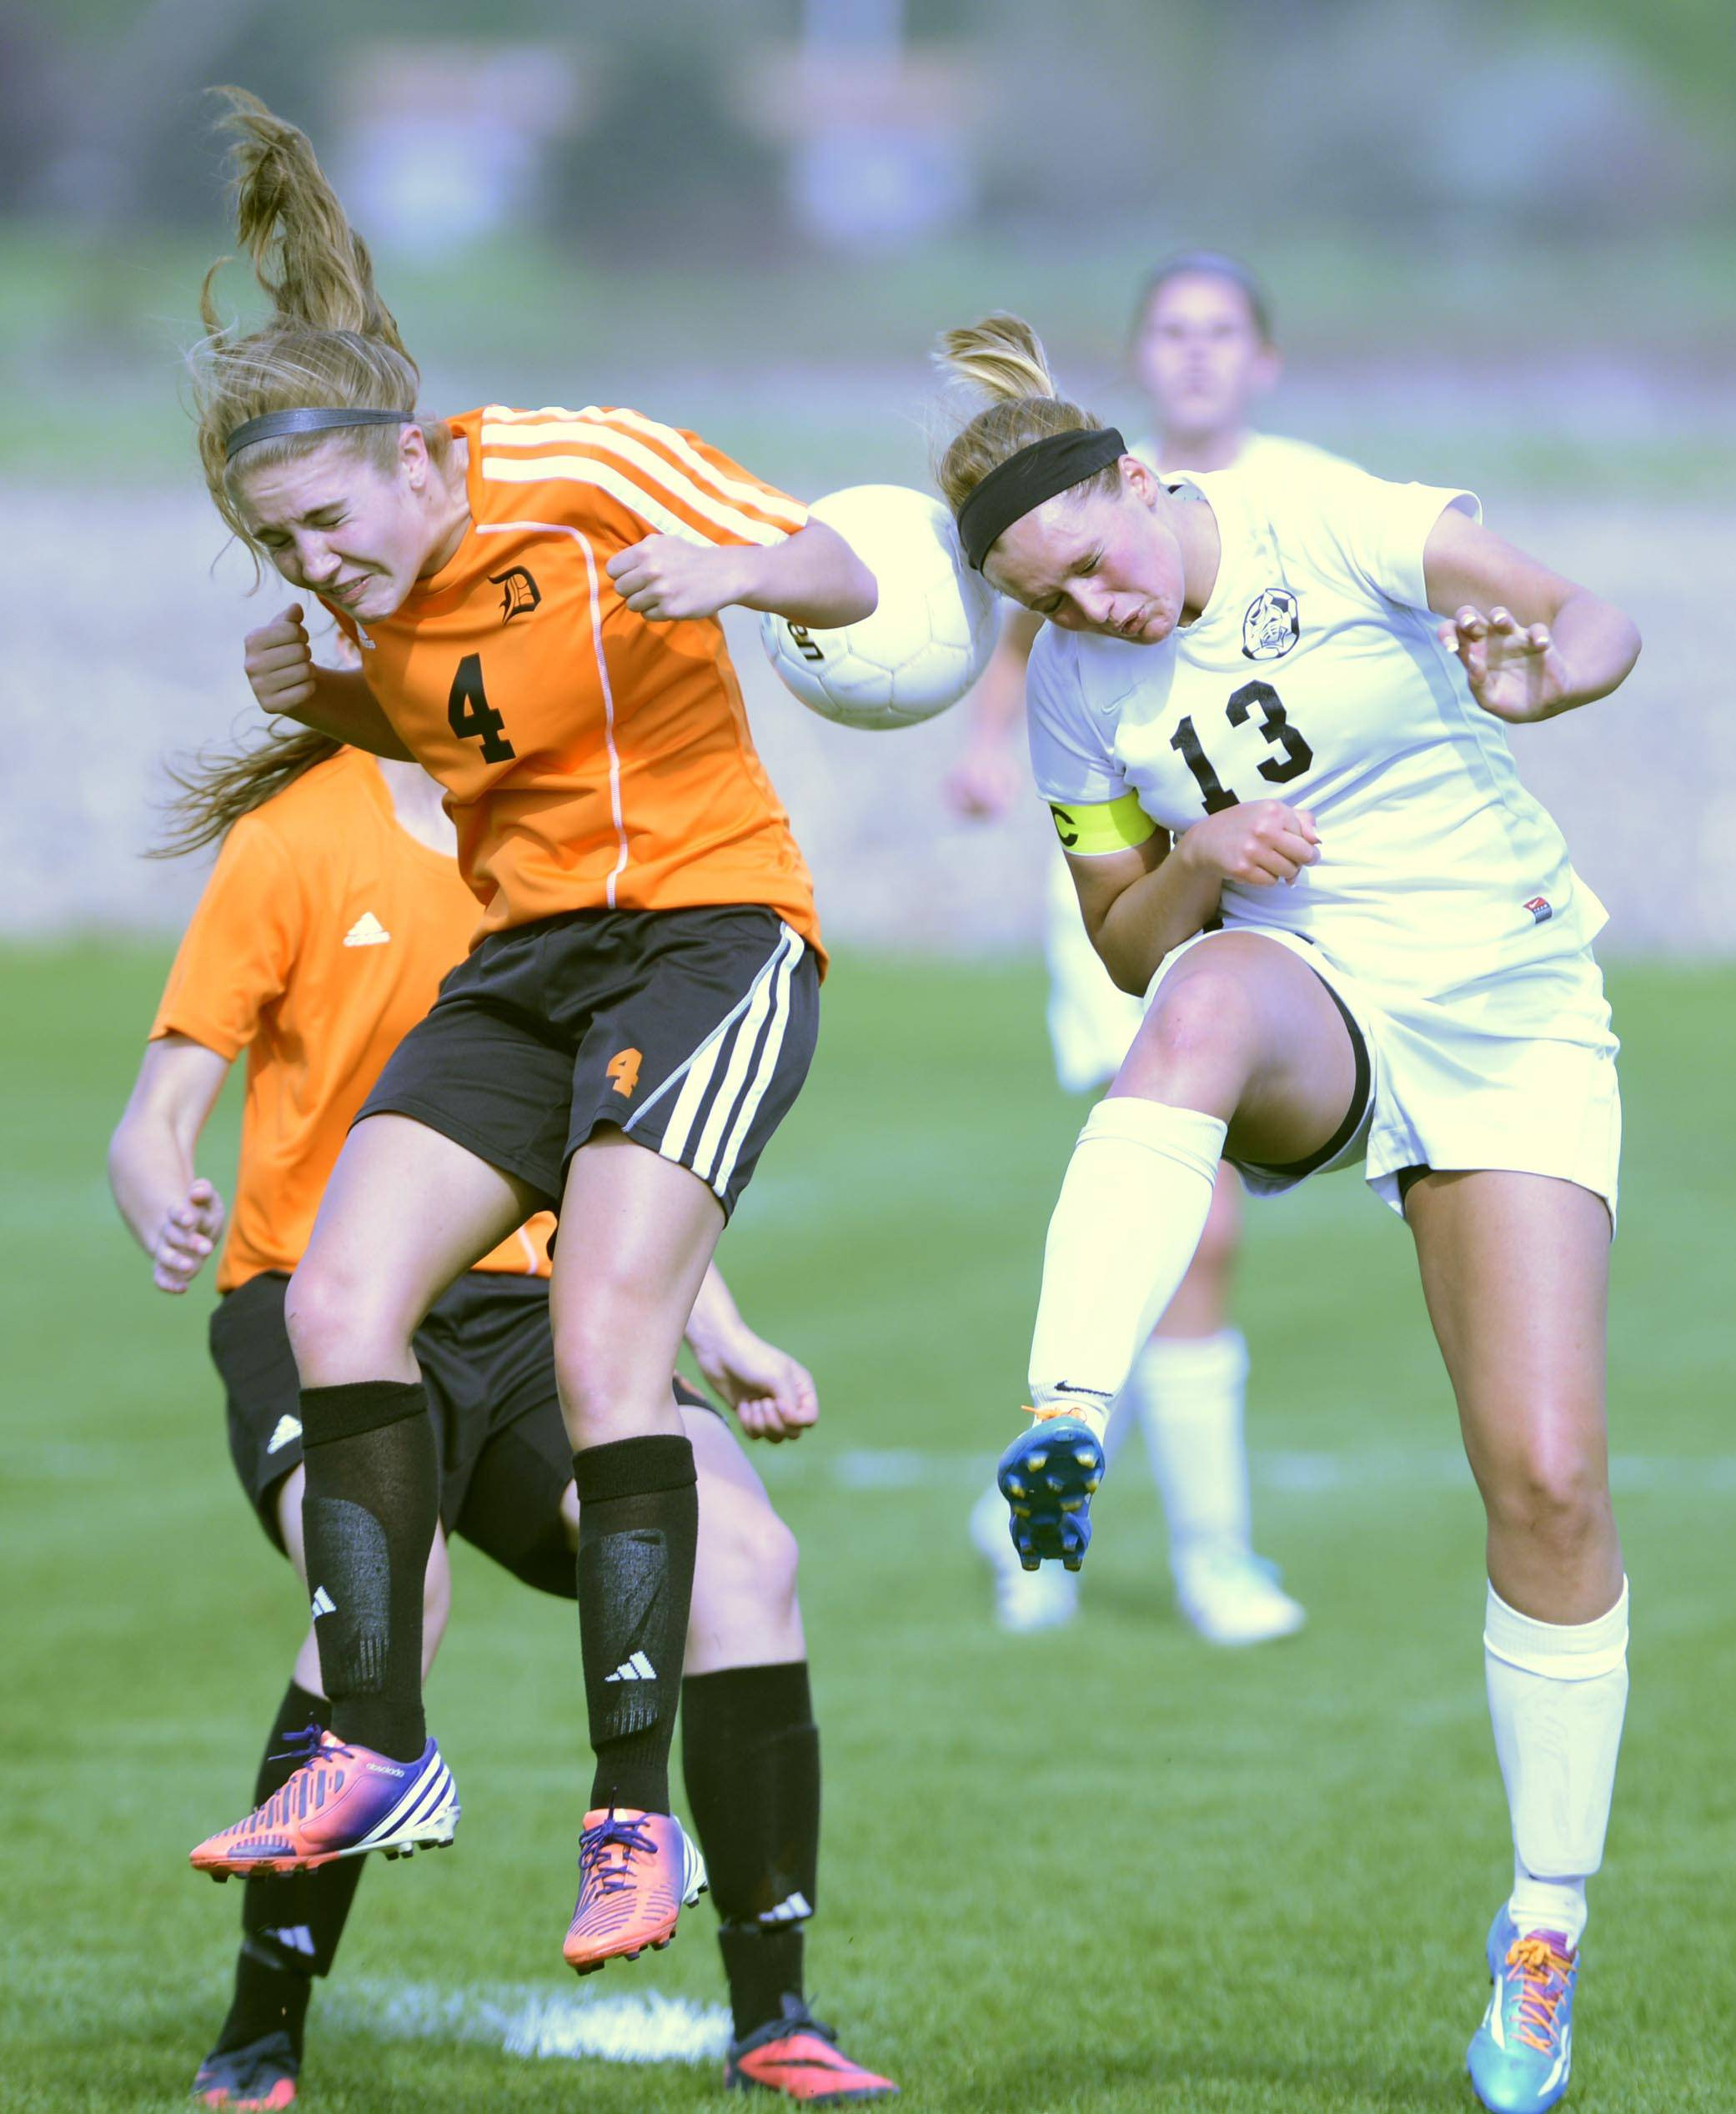 Kaneland's Delaney Stryczek, right, heads the ball Monday in Maple Park.